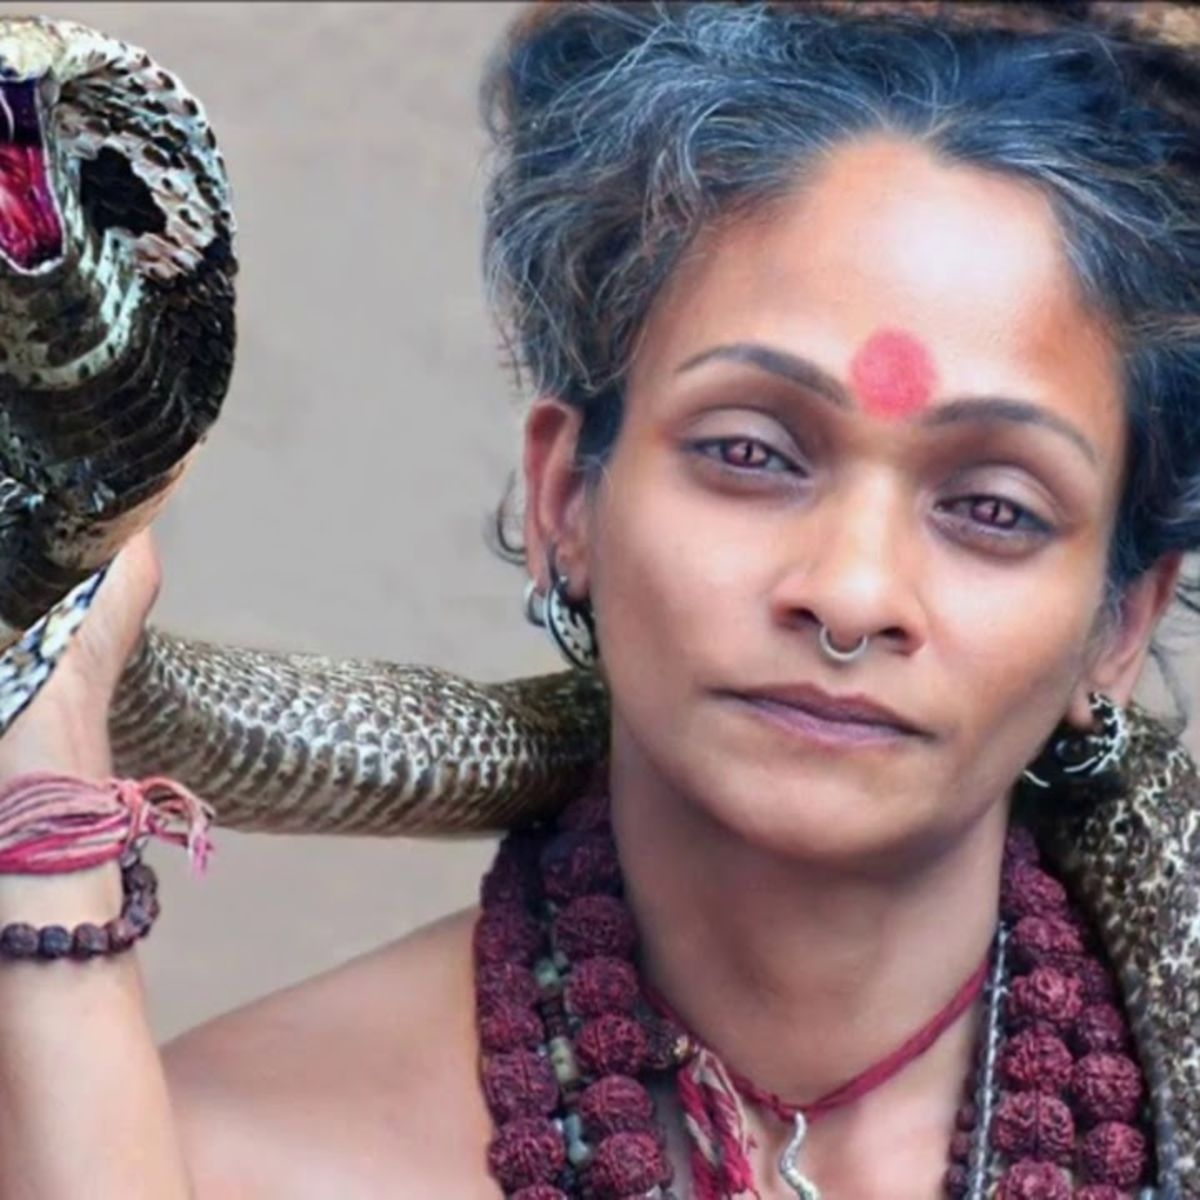 Sheila Chandra with cobra, portrait